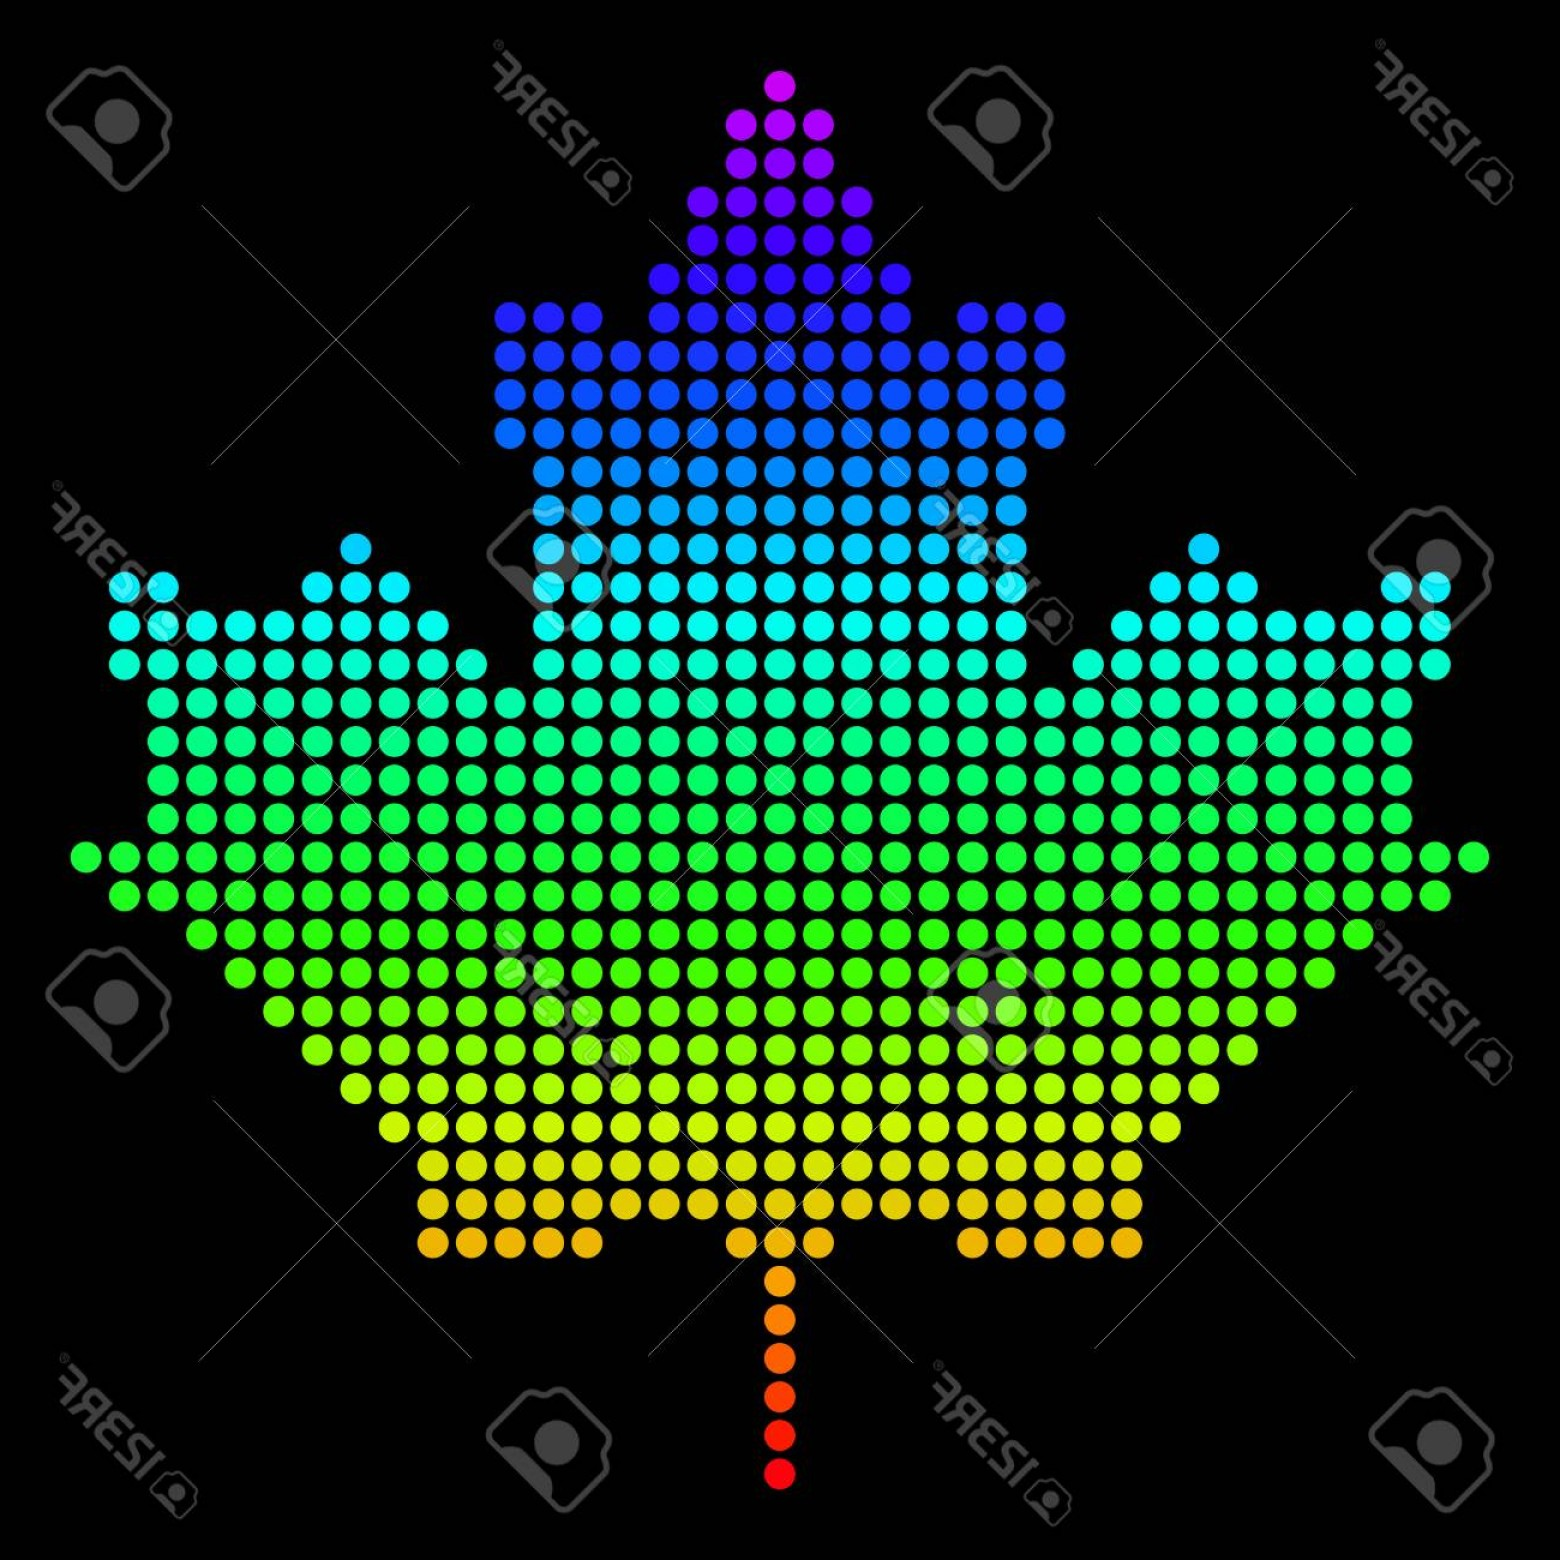 Geographic Leaf Vector: Photospectrum Dotted Pixelated Maple Leaf Vector Geographic Map In Bright Colors On A Black Background Mu